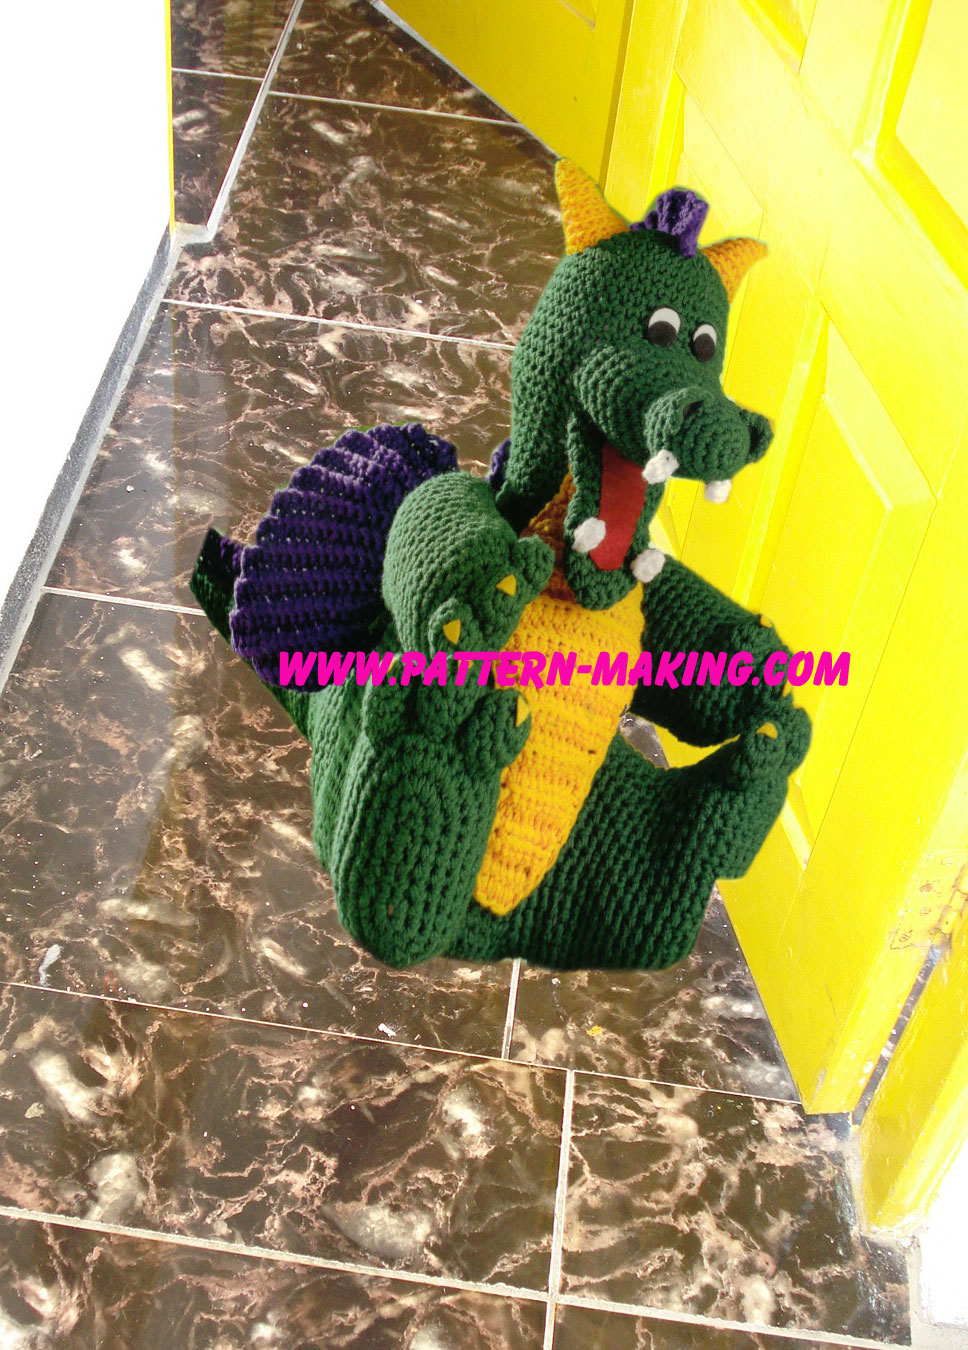 Crochet Dragon Doorstop Pattern Making Com